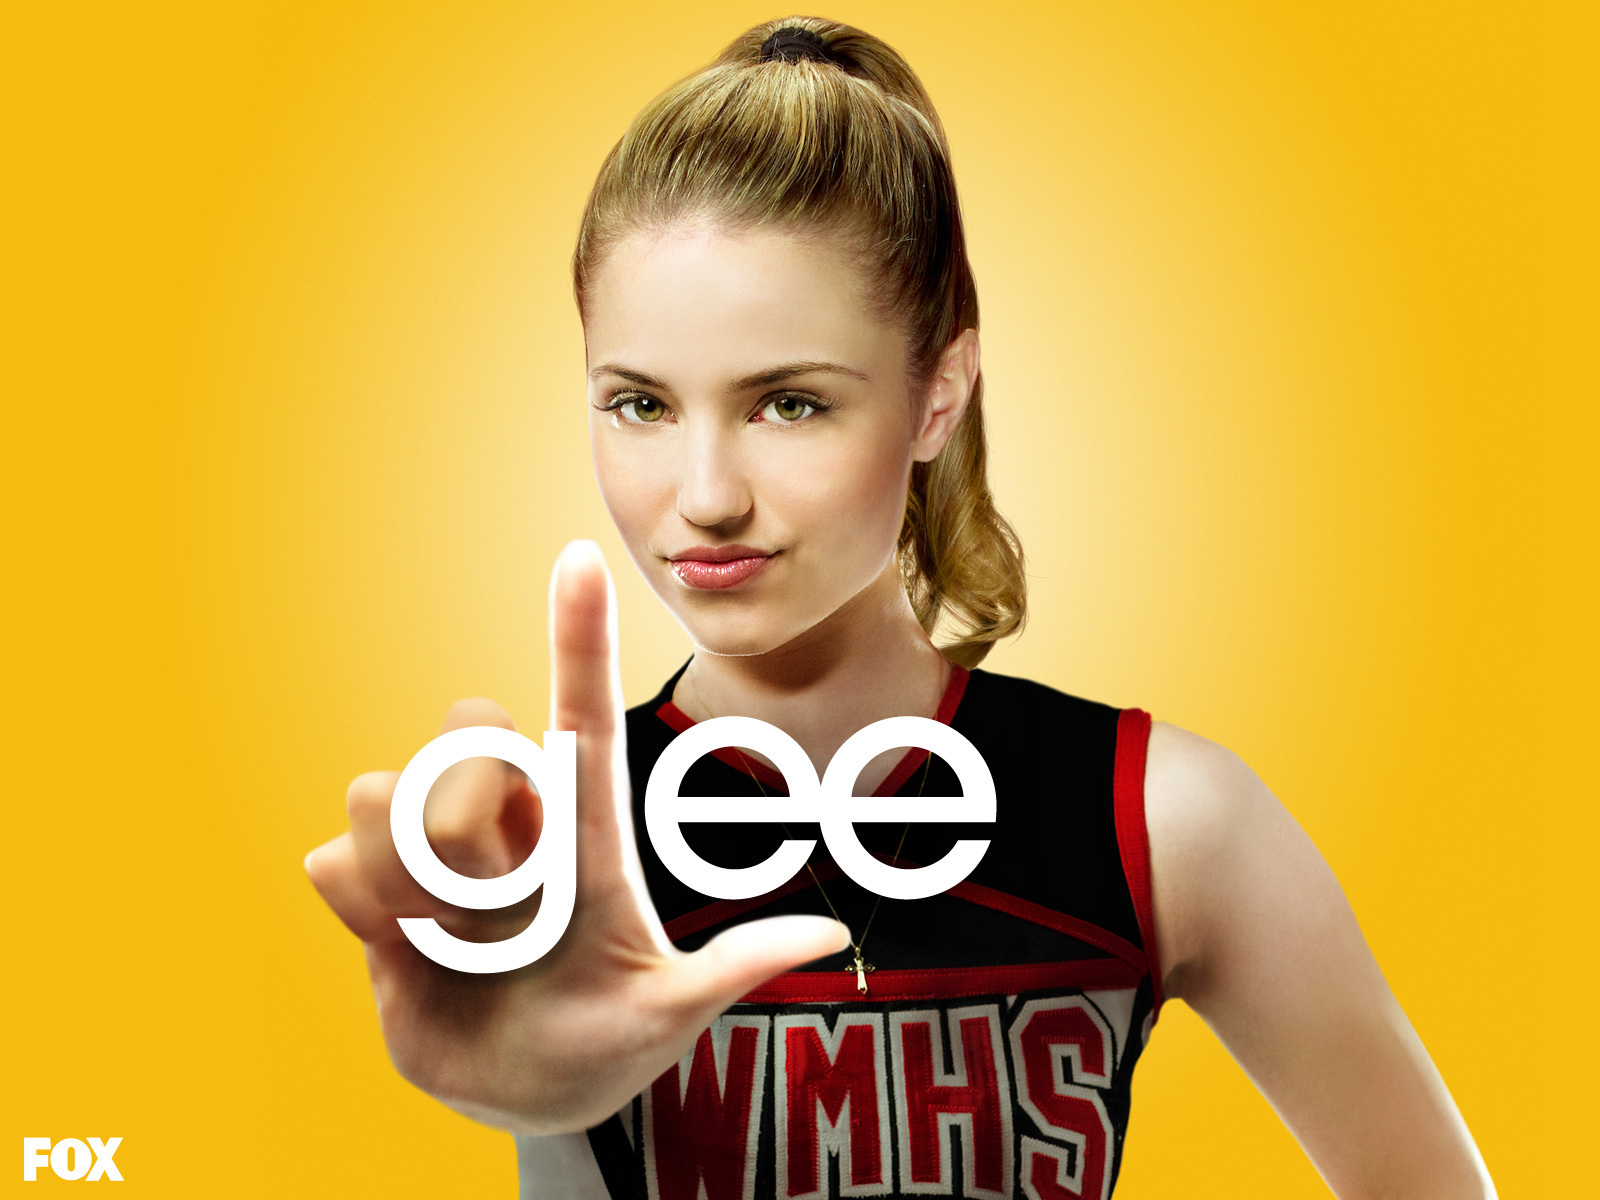 cheerleader Quinn Fabray - Quinn Fabray Wallpaper (8629647) - Fanpop